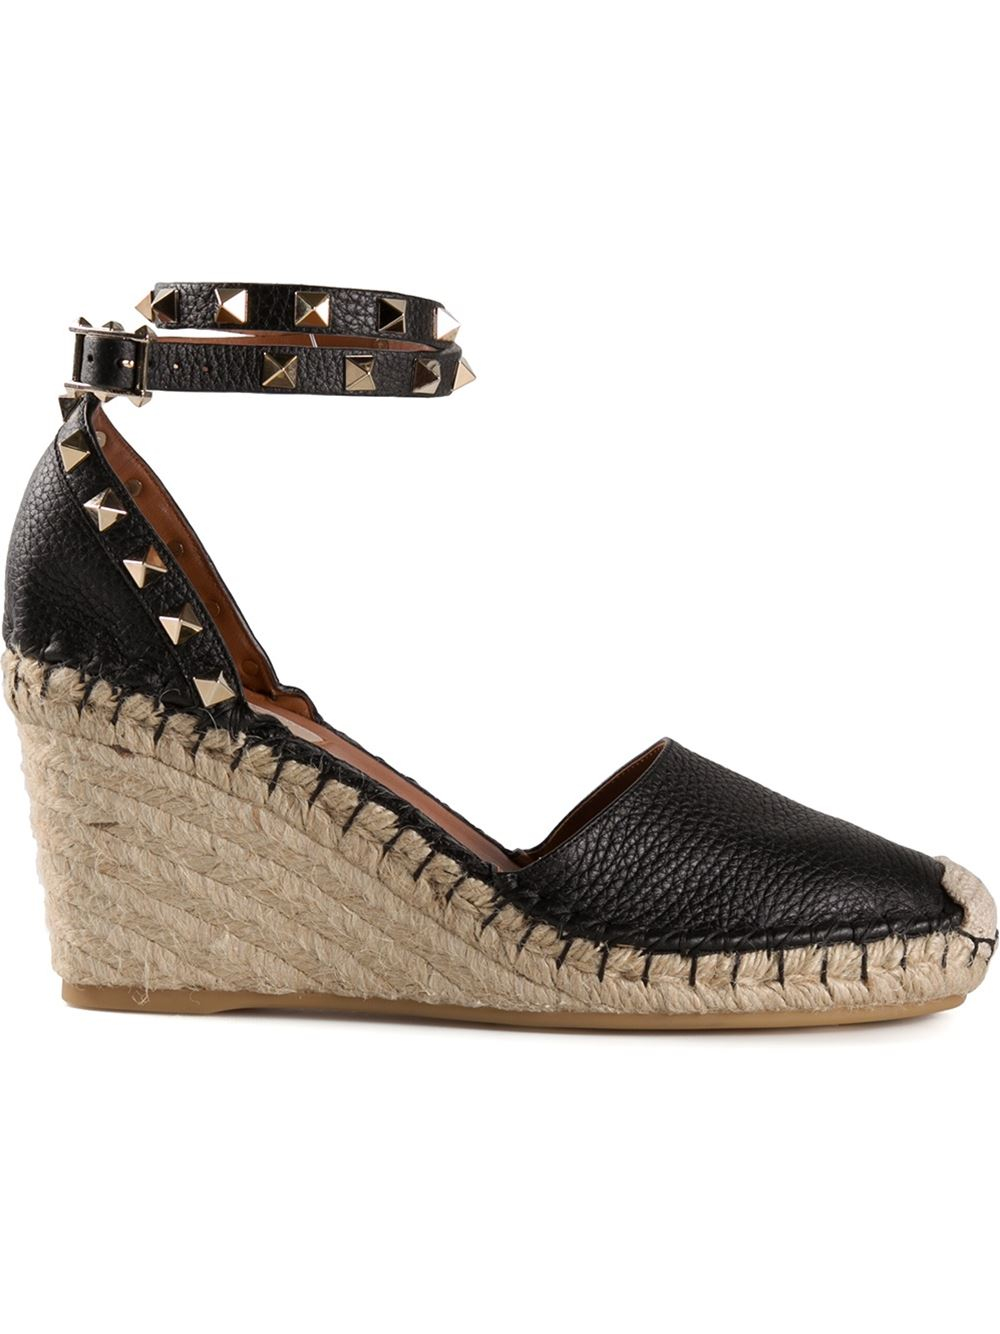 Where To Buy Valentino Rockstud Shoes